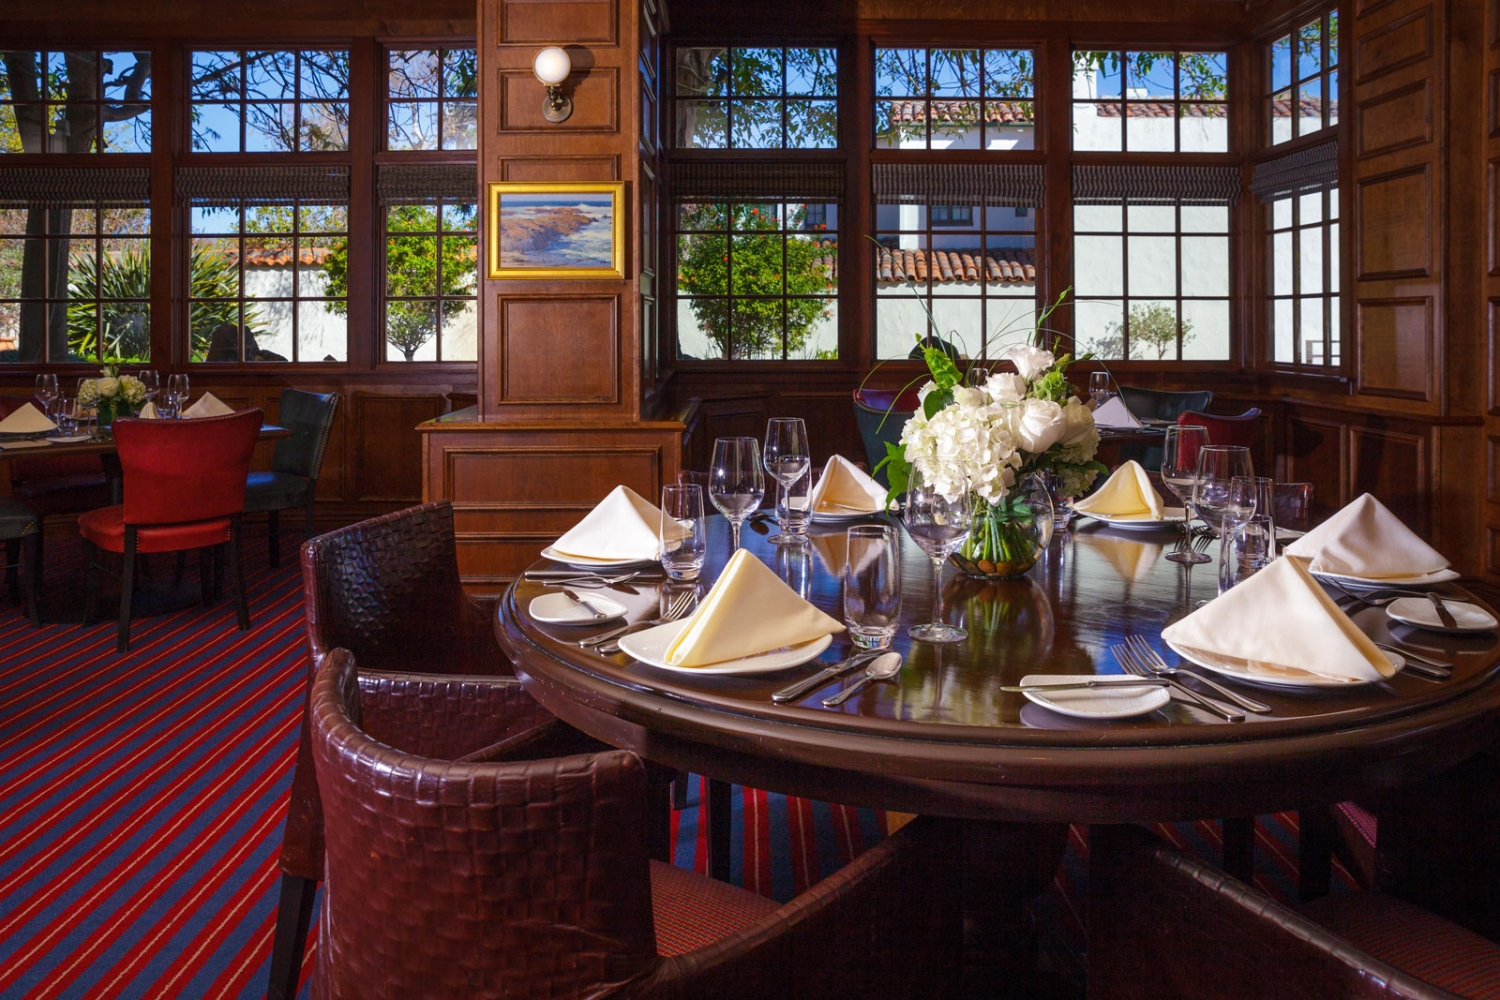 Dine In The Cozy Fireside Dining Room, Or Breathe In The Fresh Coastal Air  On The Outdoor, Pet Friendly, Heated Patio.